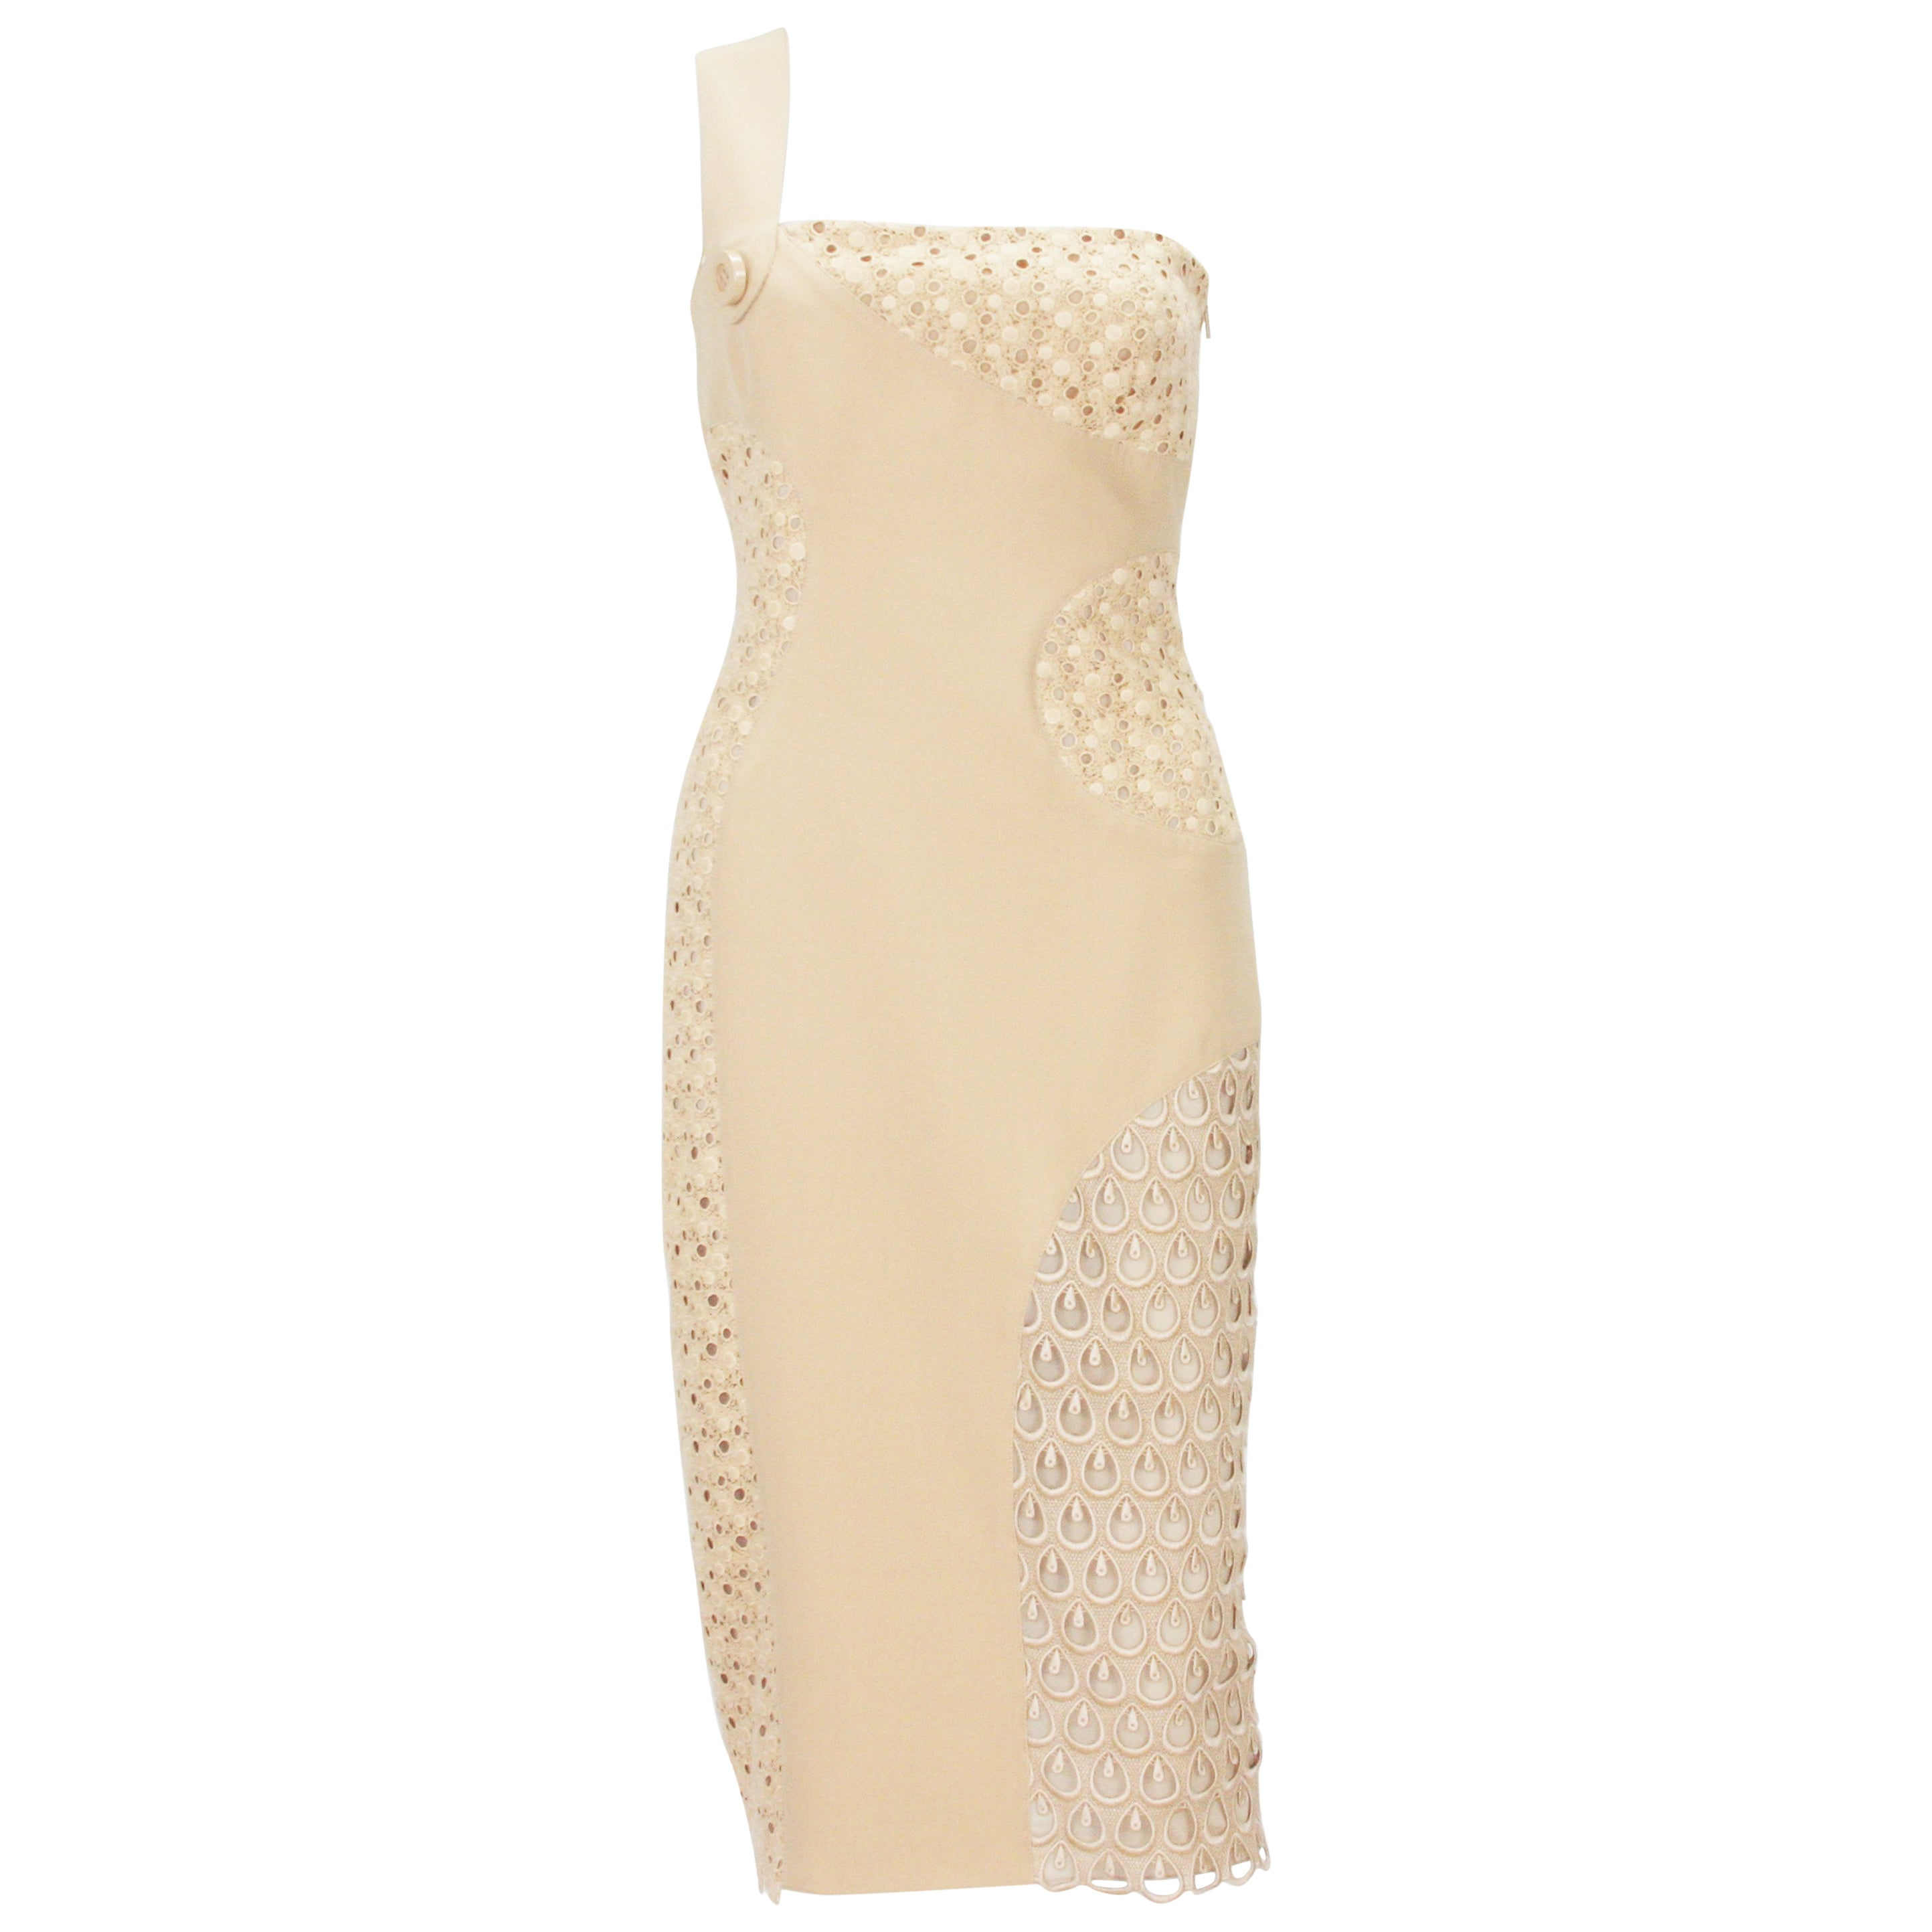 New Versace Nude Crocheted Cotton and Silk-Cady One-Shoulder Dress 40